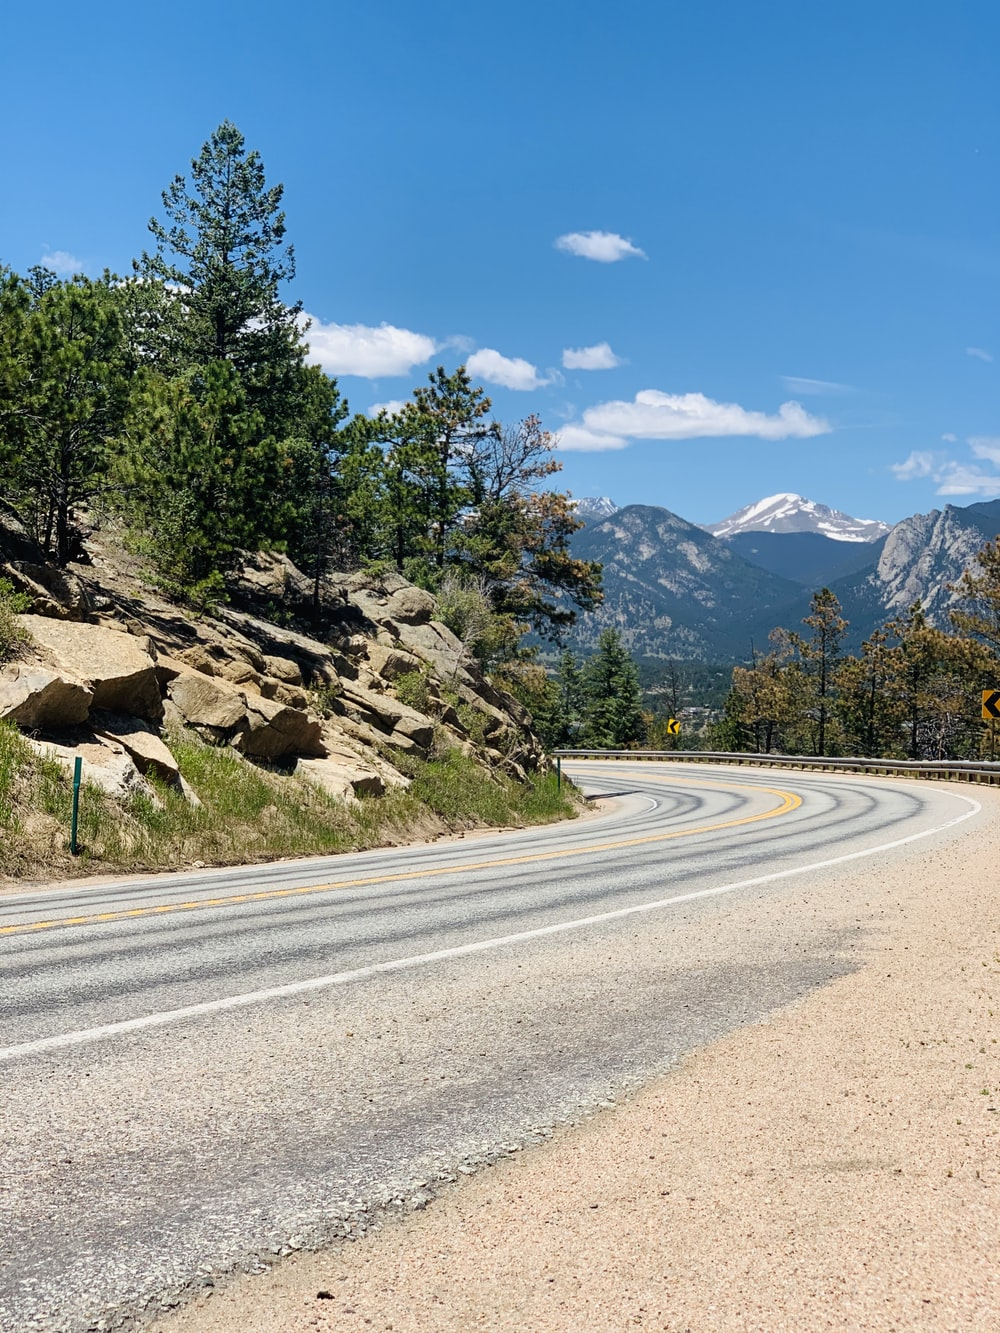 gray asphalt road near green trees and mountain under blue sky during daytime